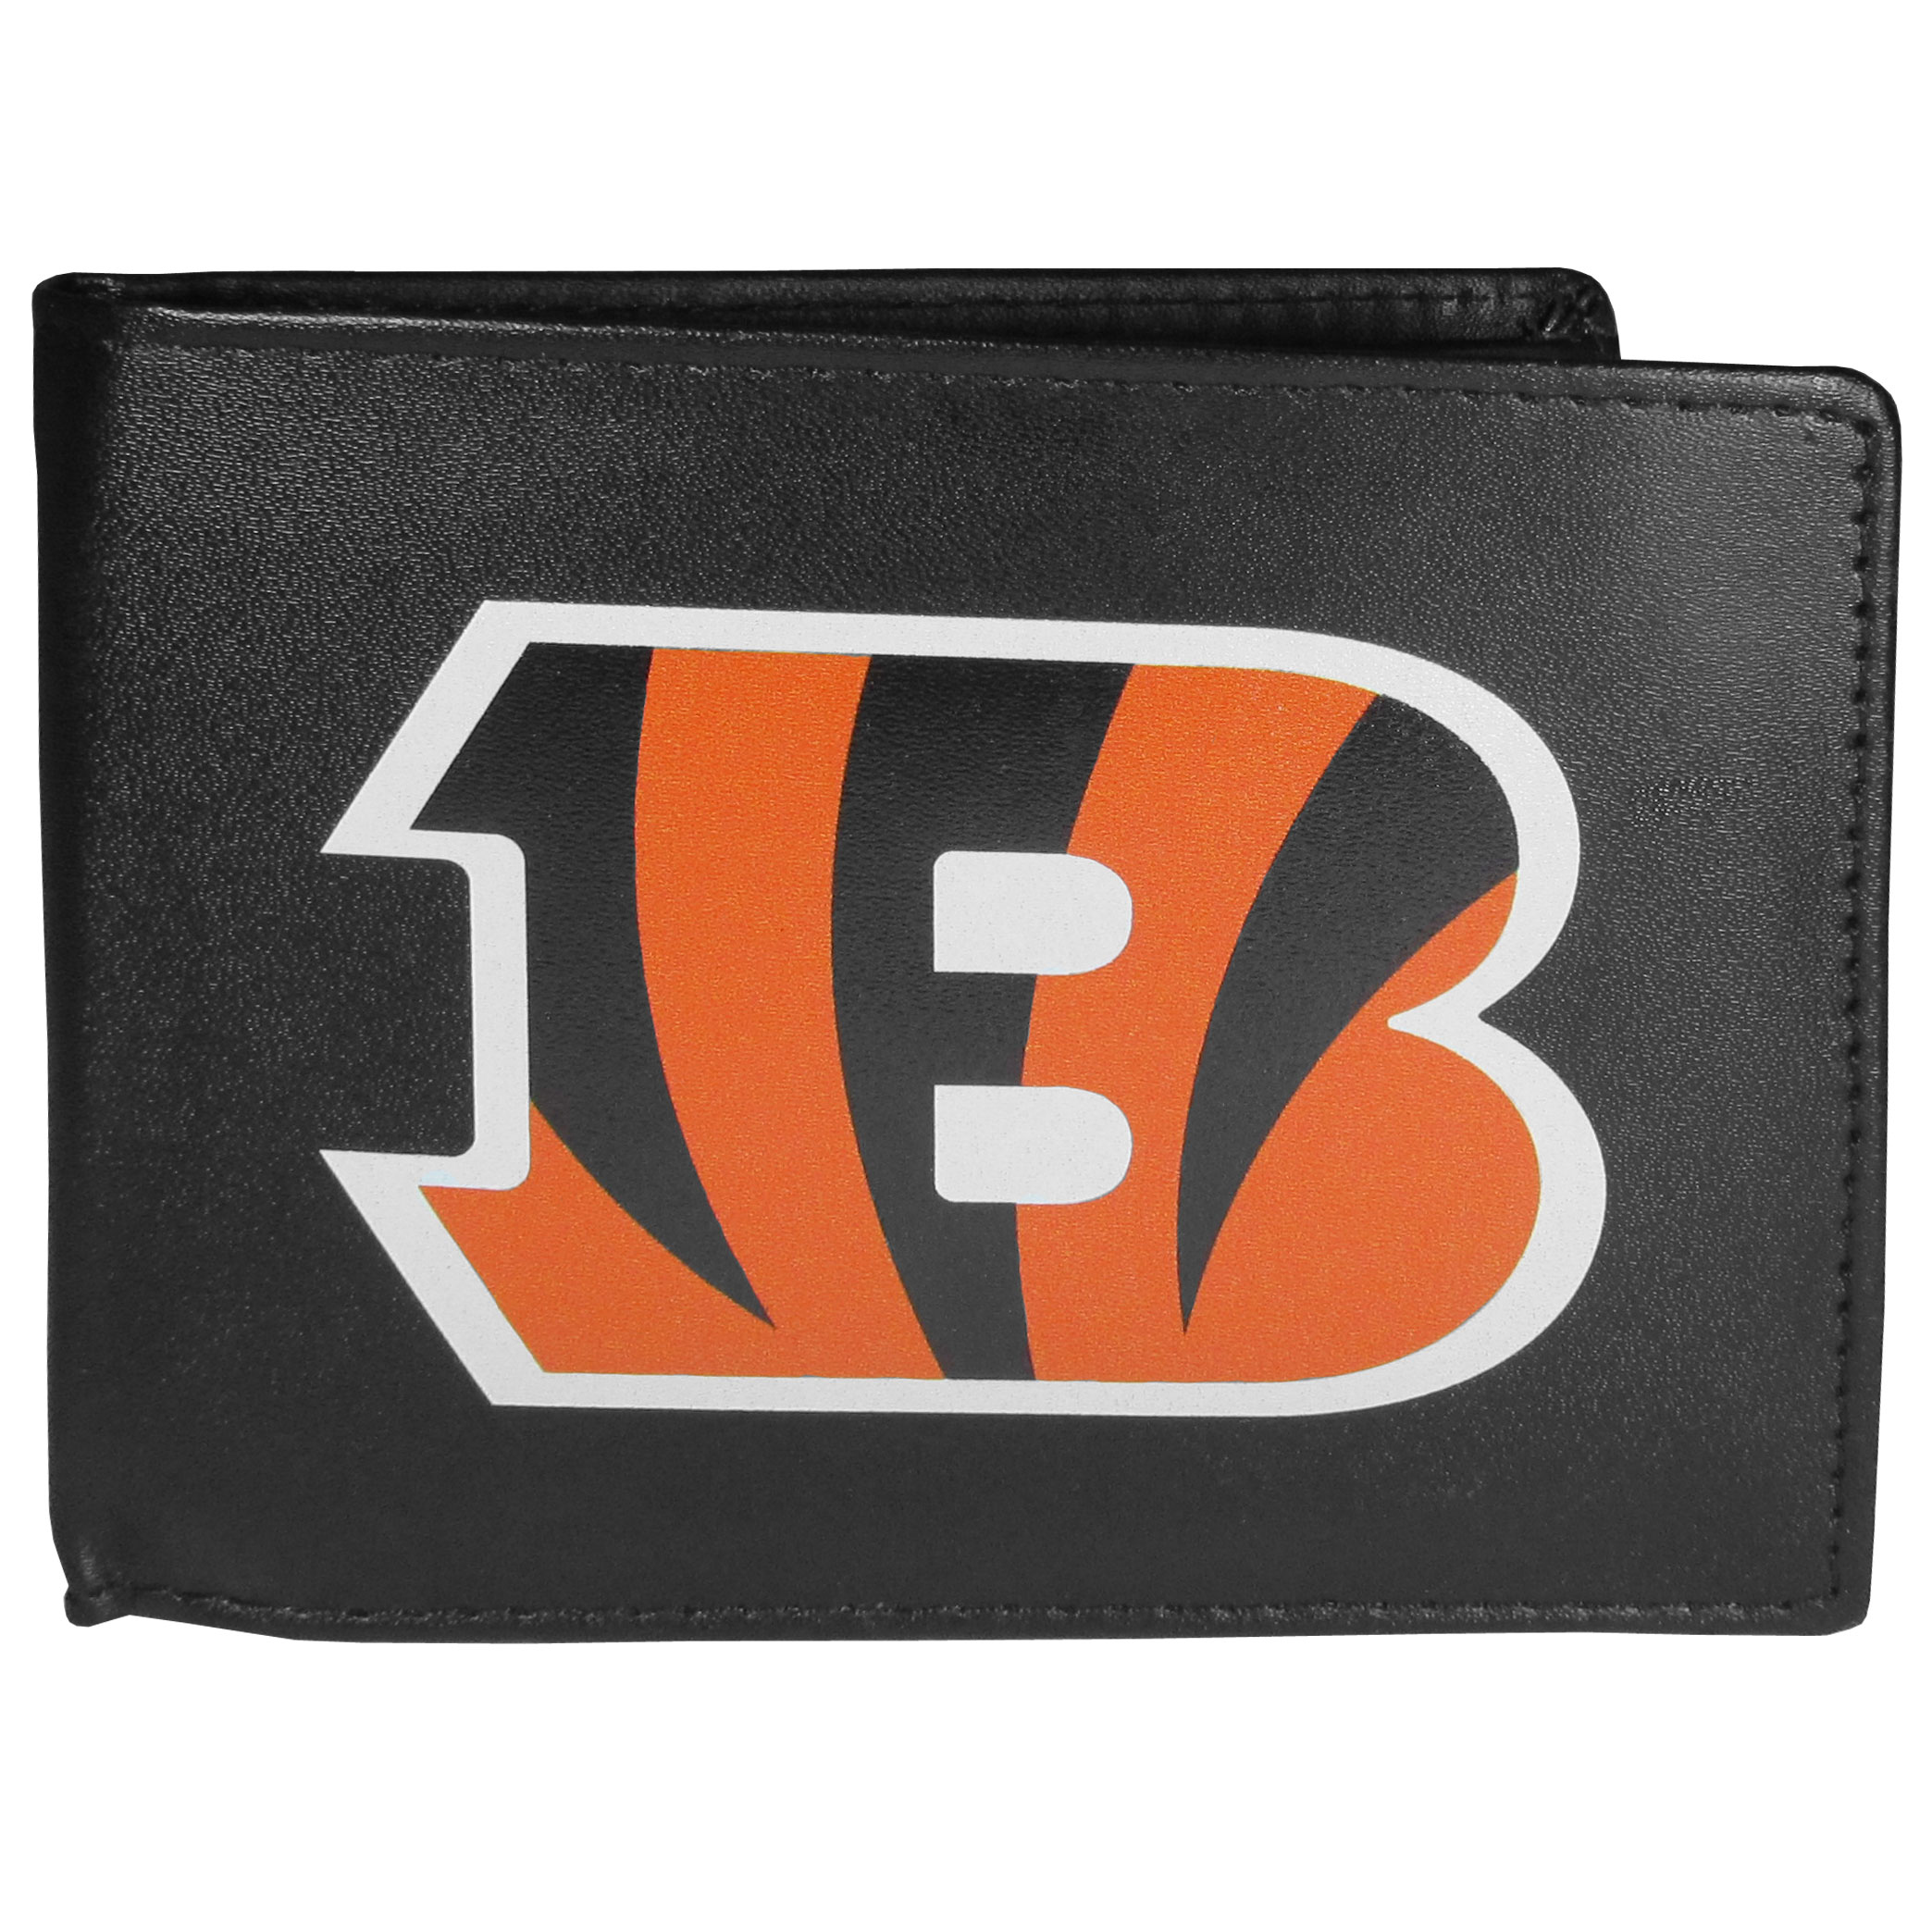 Cincinnati Bengals Bi-fold Wallet Large Logo - Sports fans do not have to sacrifice style with this classic bi-fold wallet that sports the Cincinnati Bengals extra large logo. This men's fashion accessory has a leather grain look and expert craftmanship for a quality wallet at a great price. The wallet features inner credit card slots, windowed ID slot and a large billfold pocket. The front of the wallet features a printed team logo.